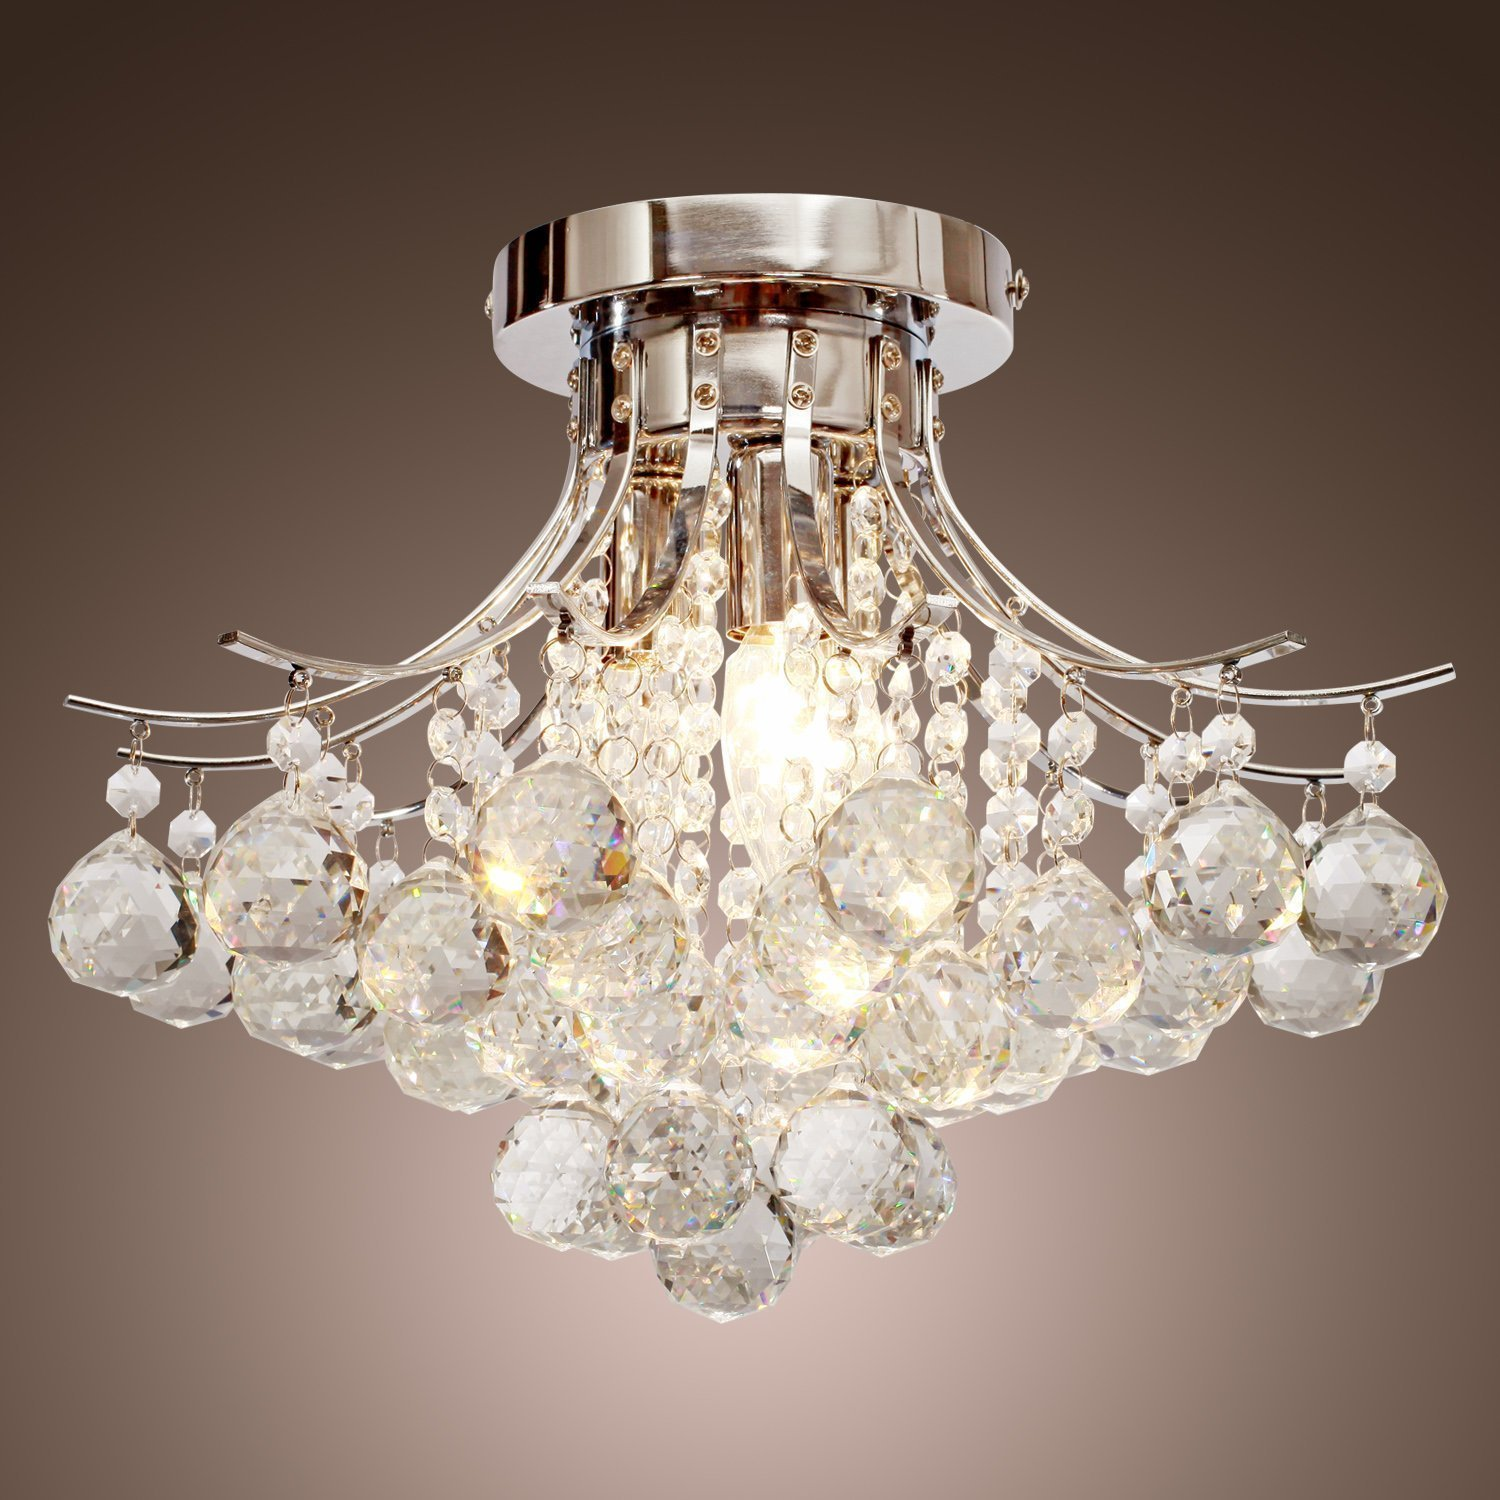 Spectacular LOCO Chrome Finish Crystal Chandelier with lights Mini Style Flush Mount Ceiling Light Fixture